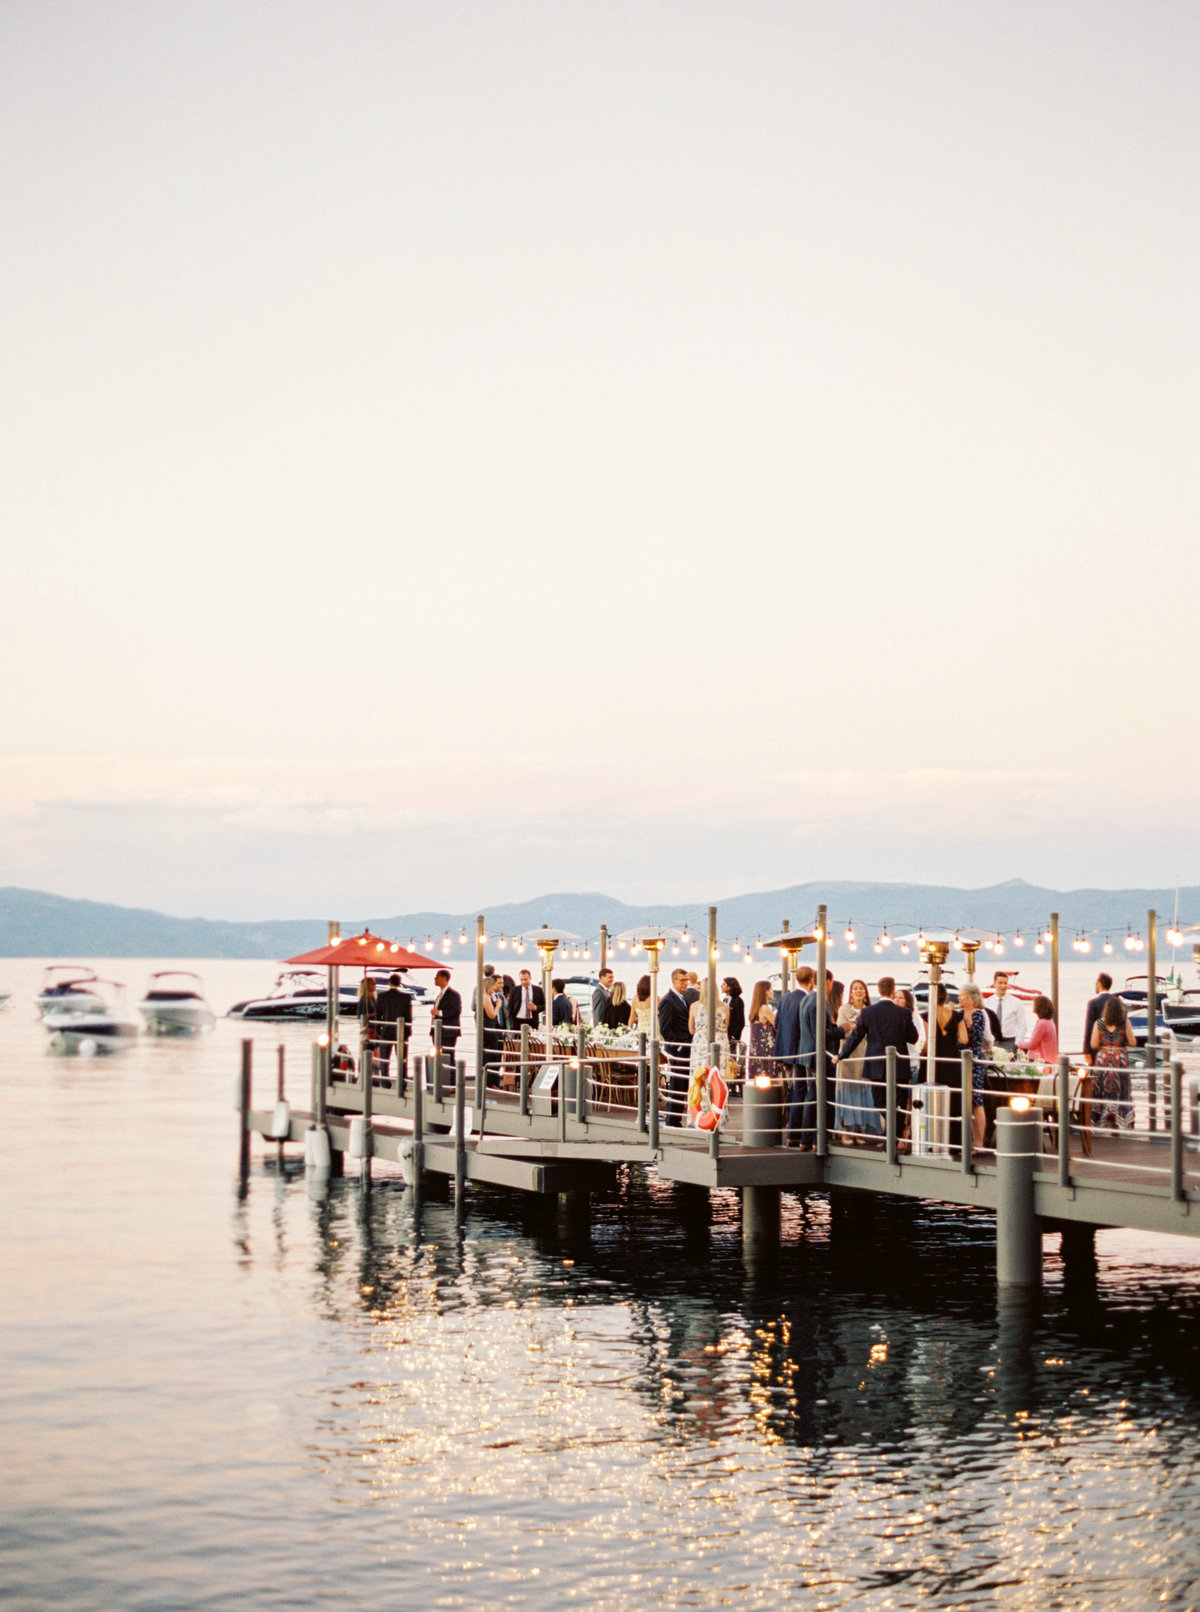 Alison + Will Tahoe West Shore Cafe Wedding Sneak Peeks | Cassie Valente Photography 0099